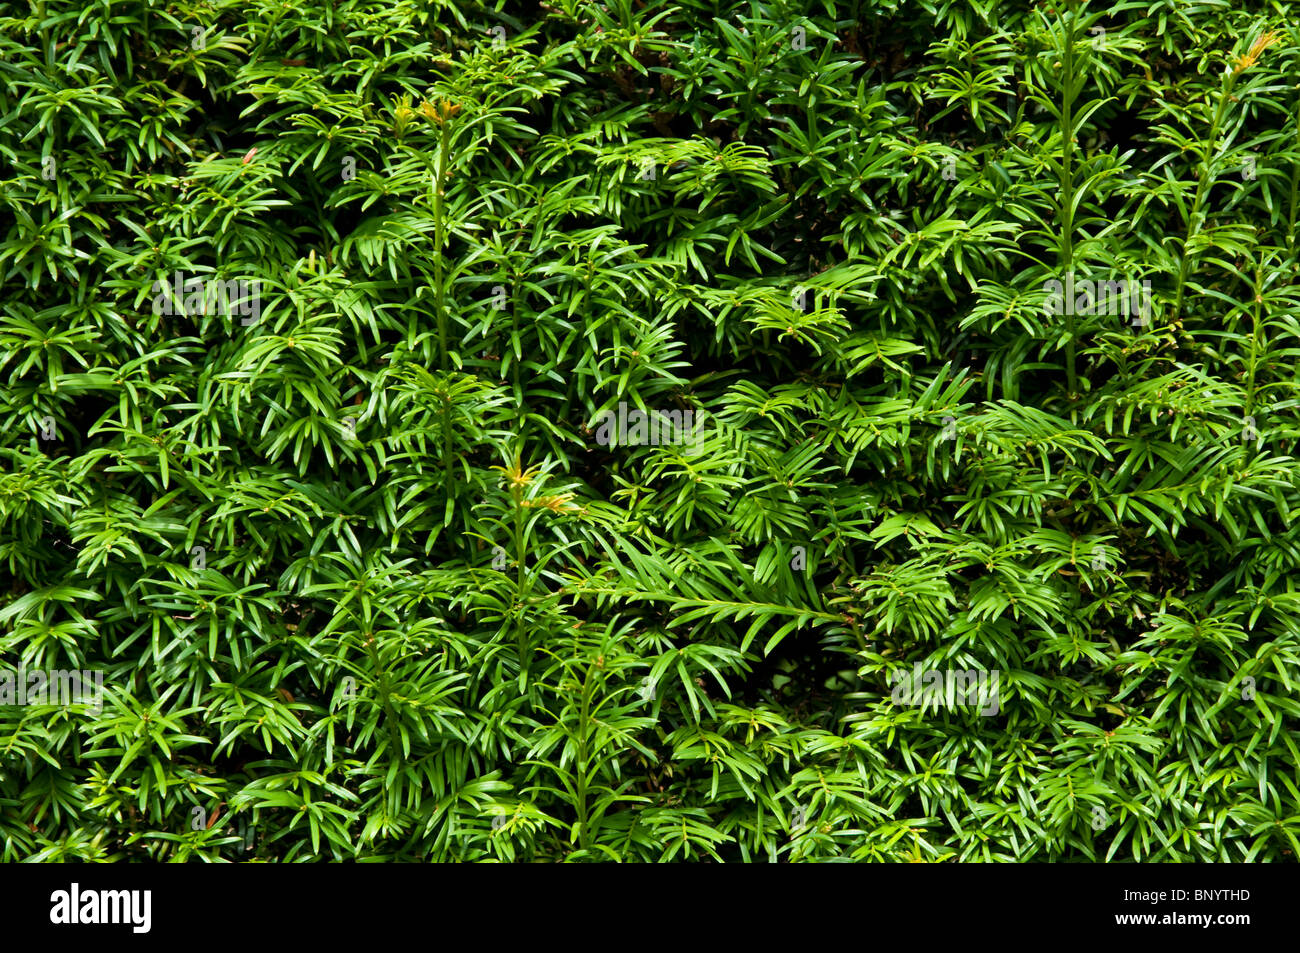 Yew Hedge - close up view - background / texture. - Stock Image